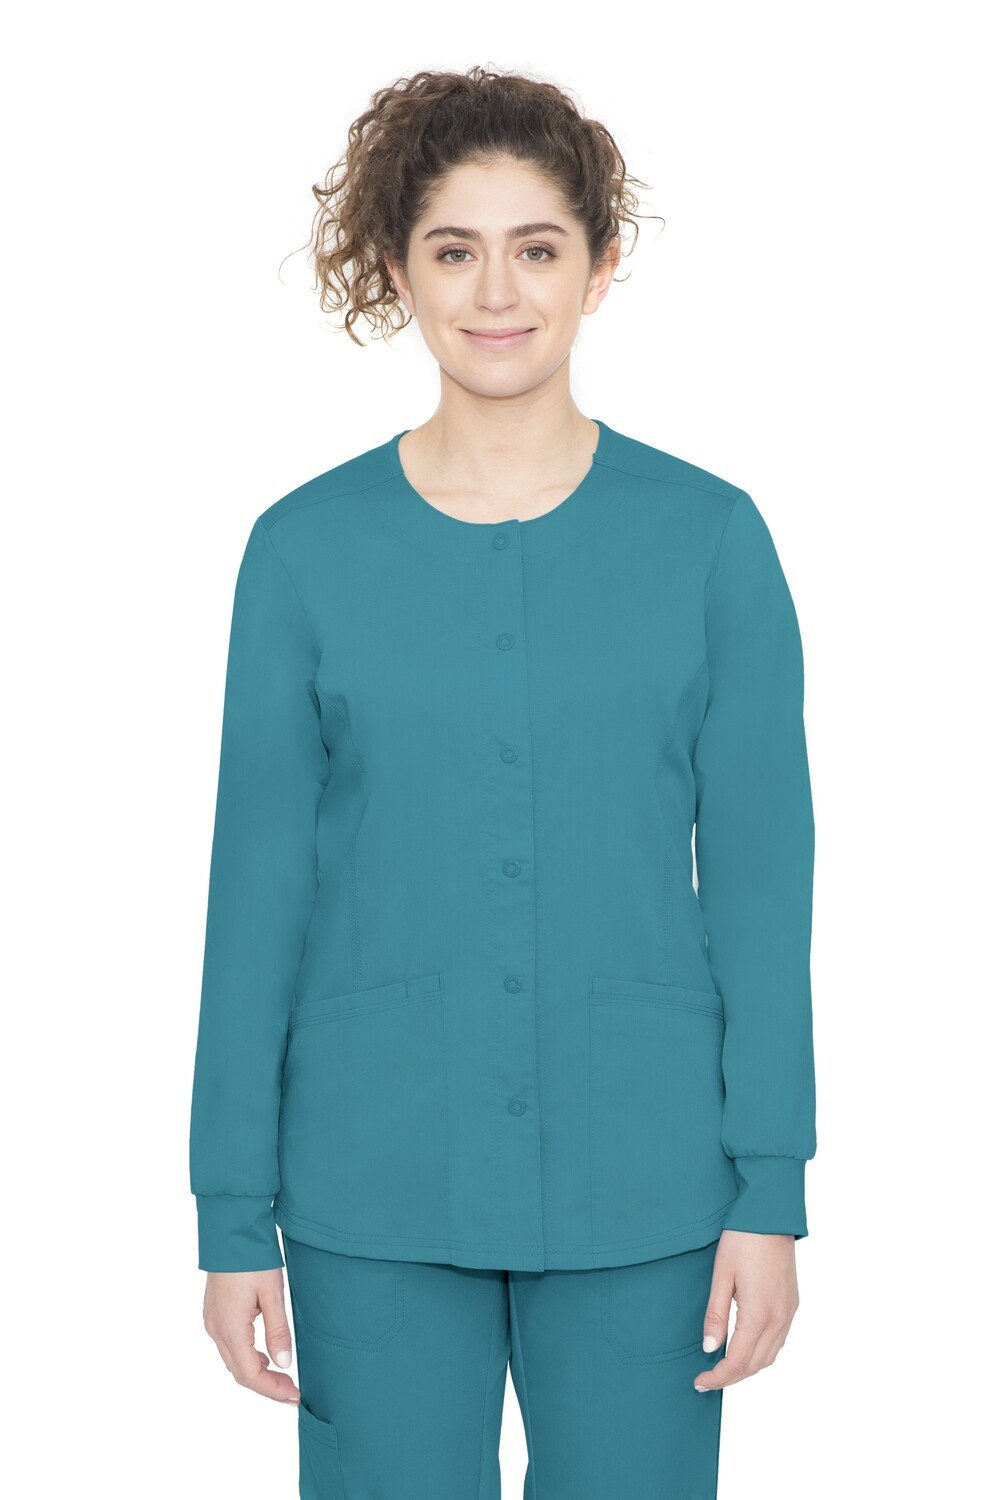 5063 DAISY JACKET TEAL XS